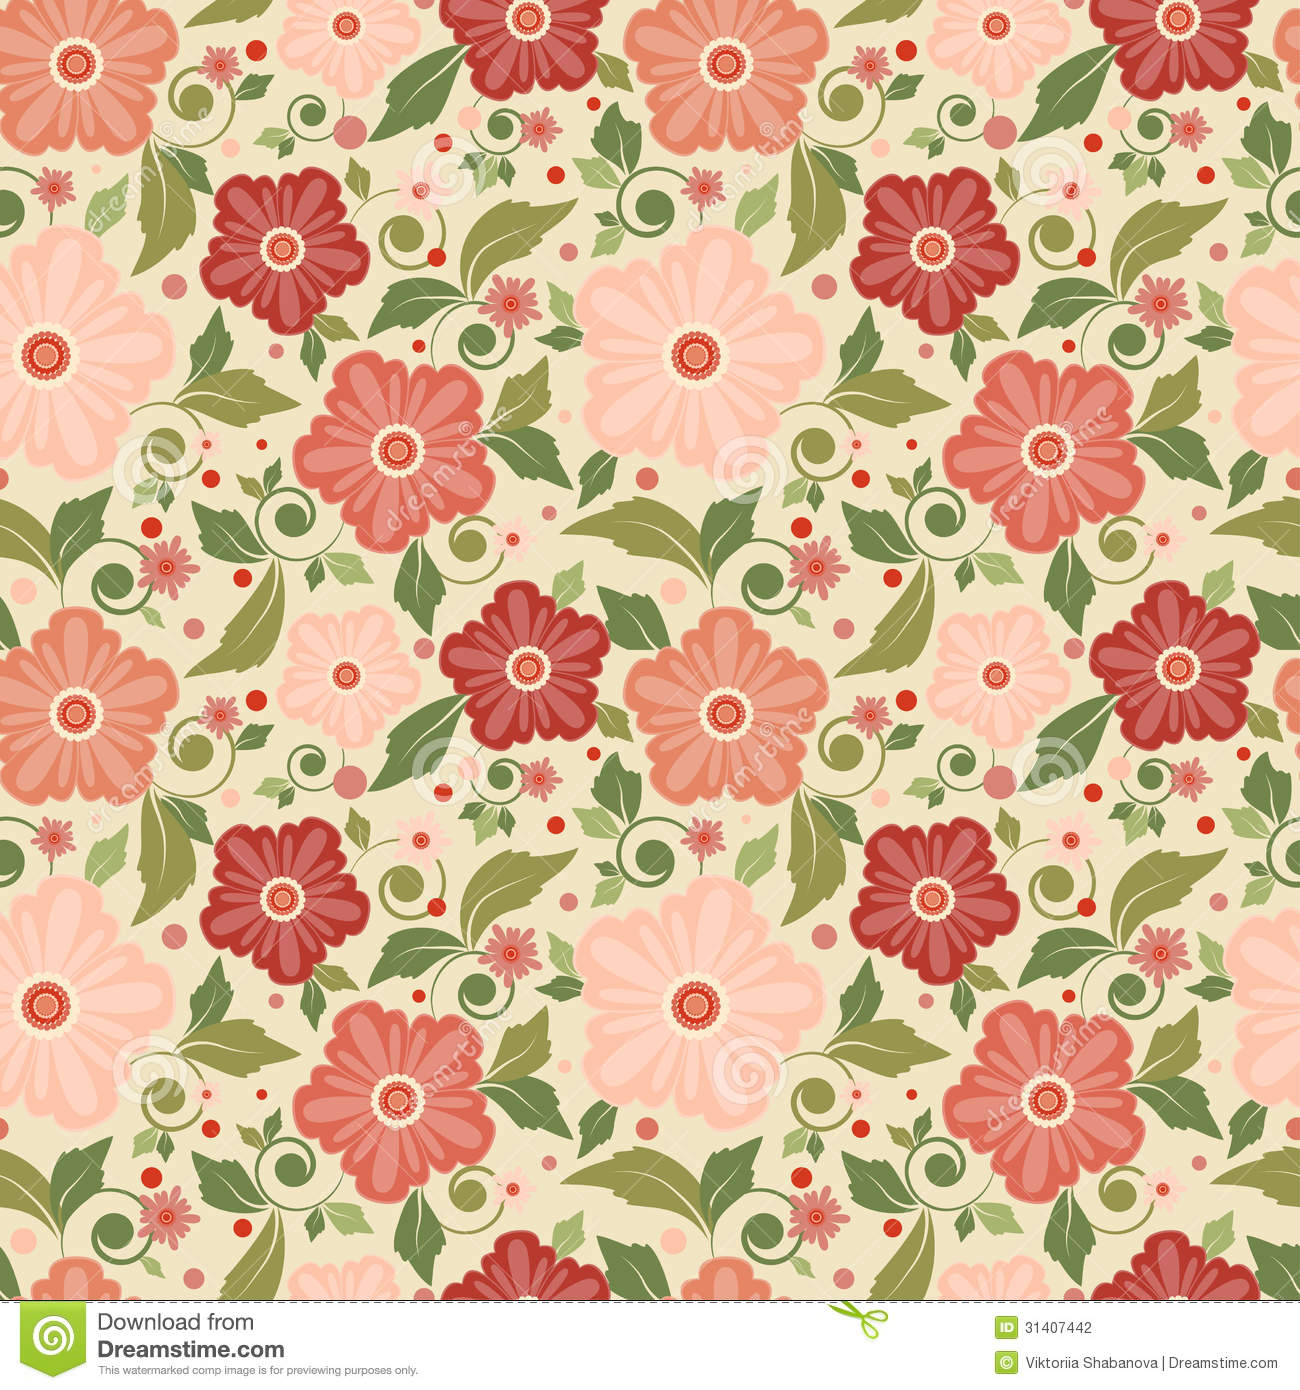 Seamless Floral Pattern With Geometric Stylized Flowers